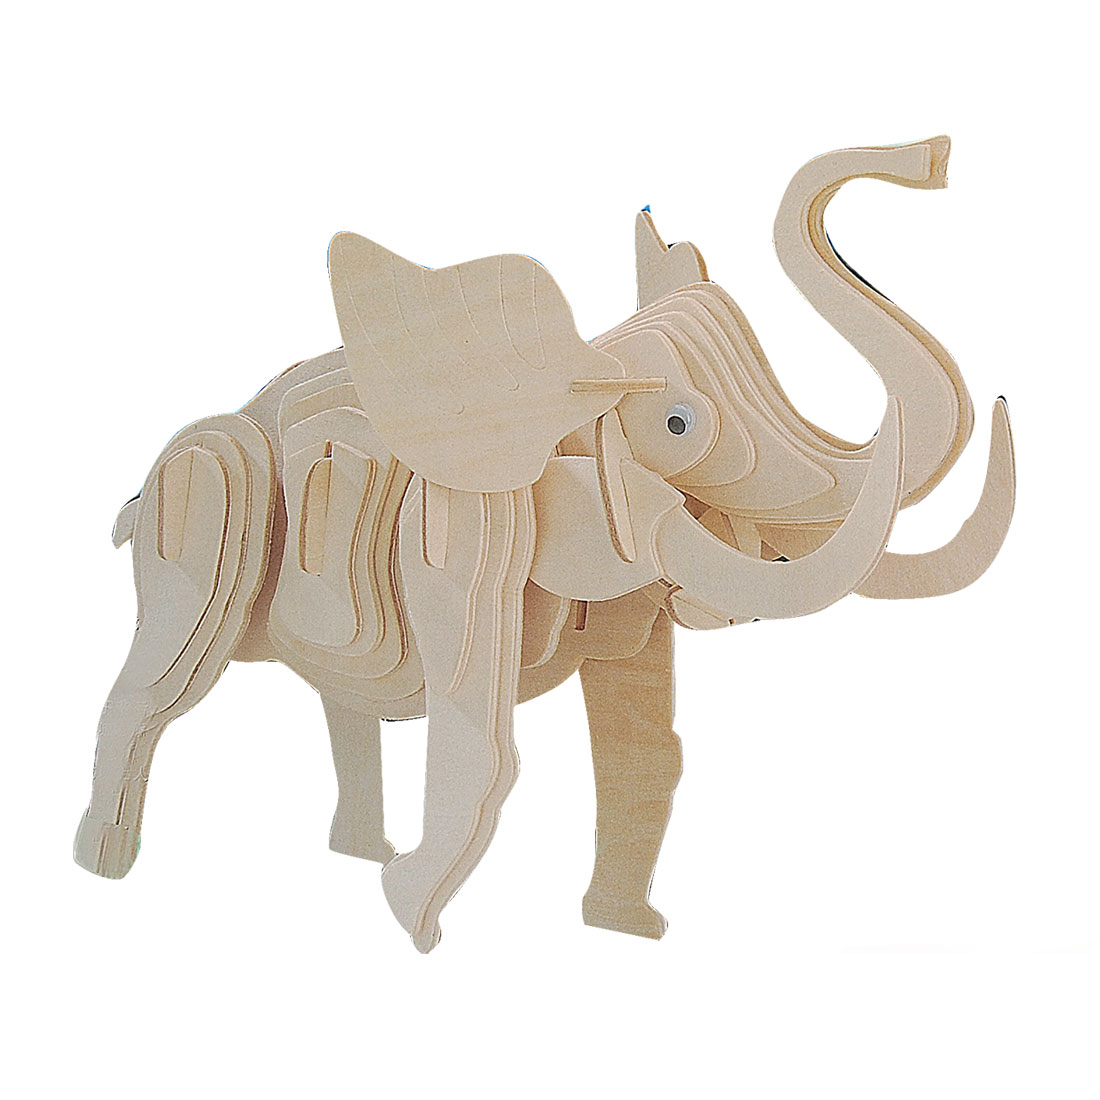 3D Woodcraft Elephant Model Wooden Construction Kit Puzzle Toy Gift